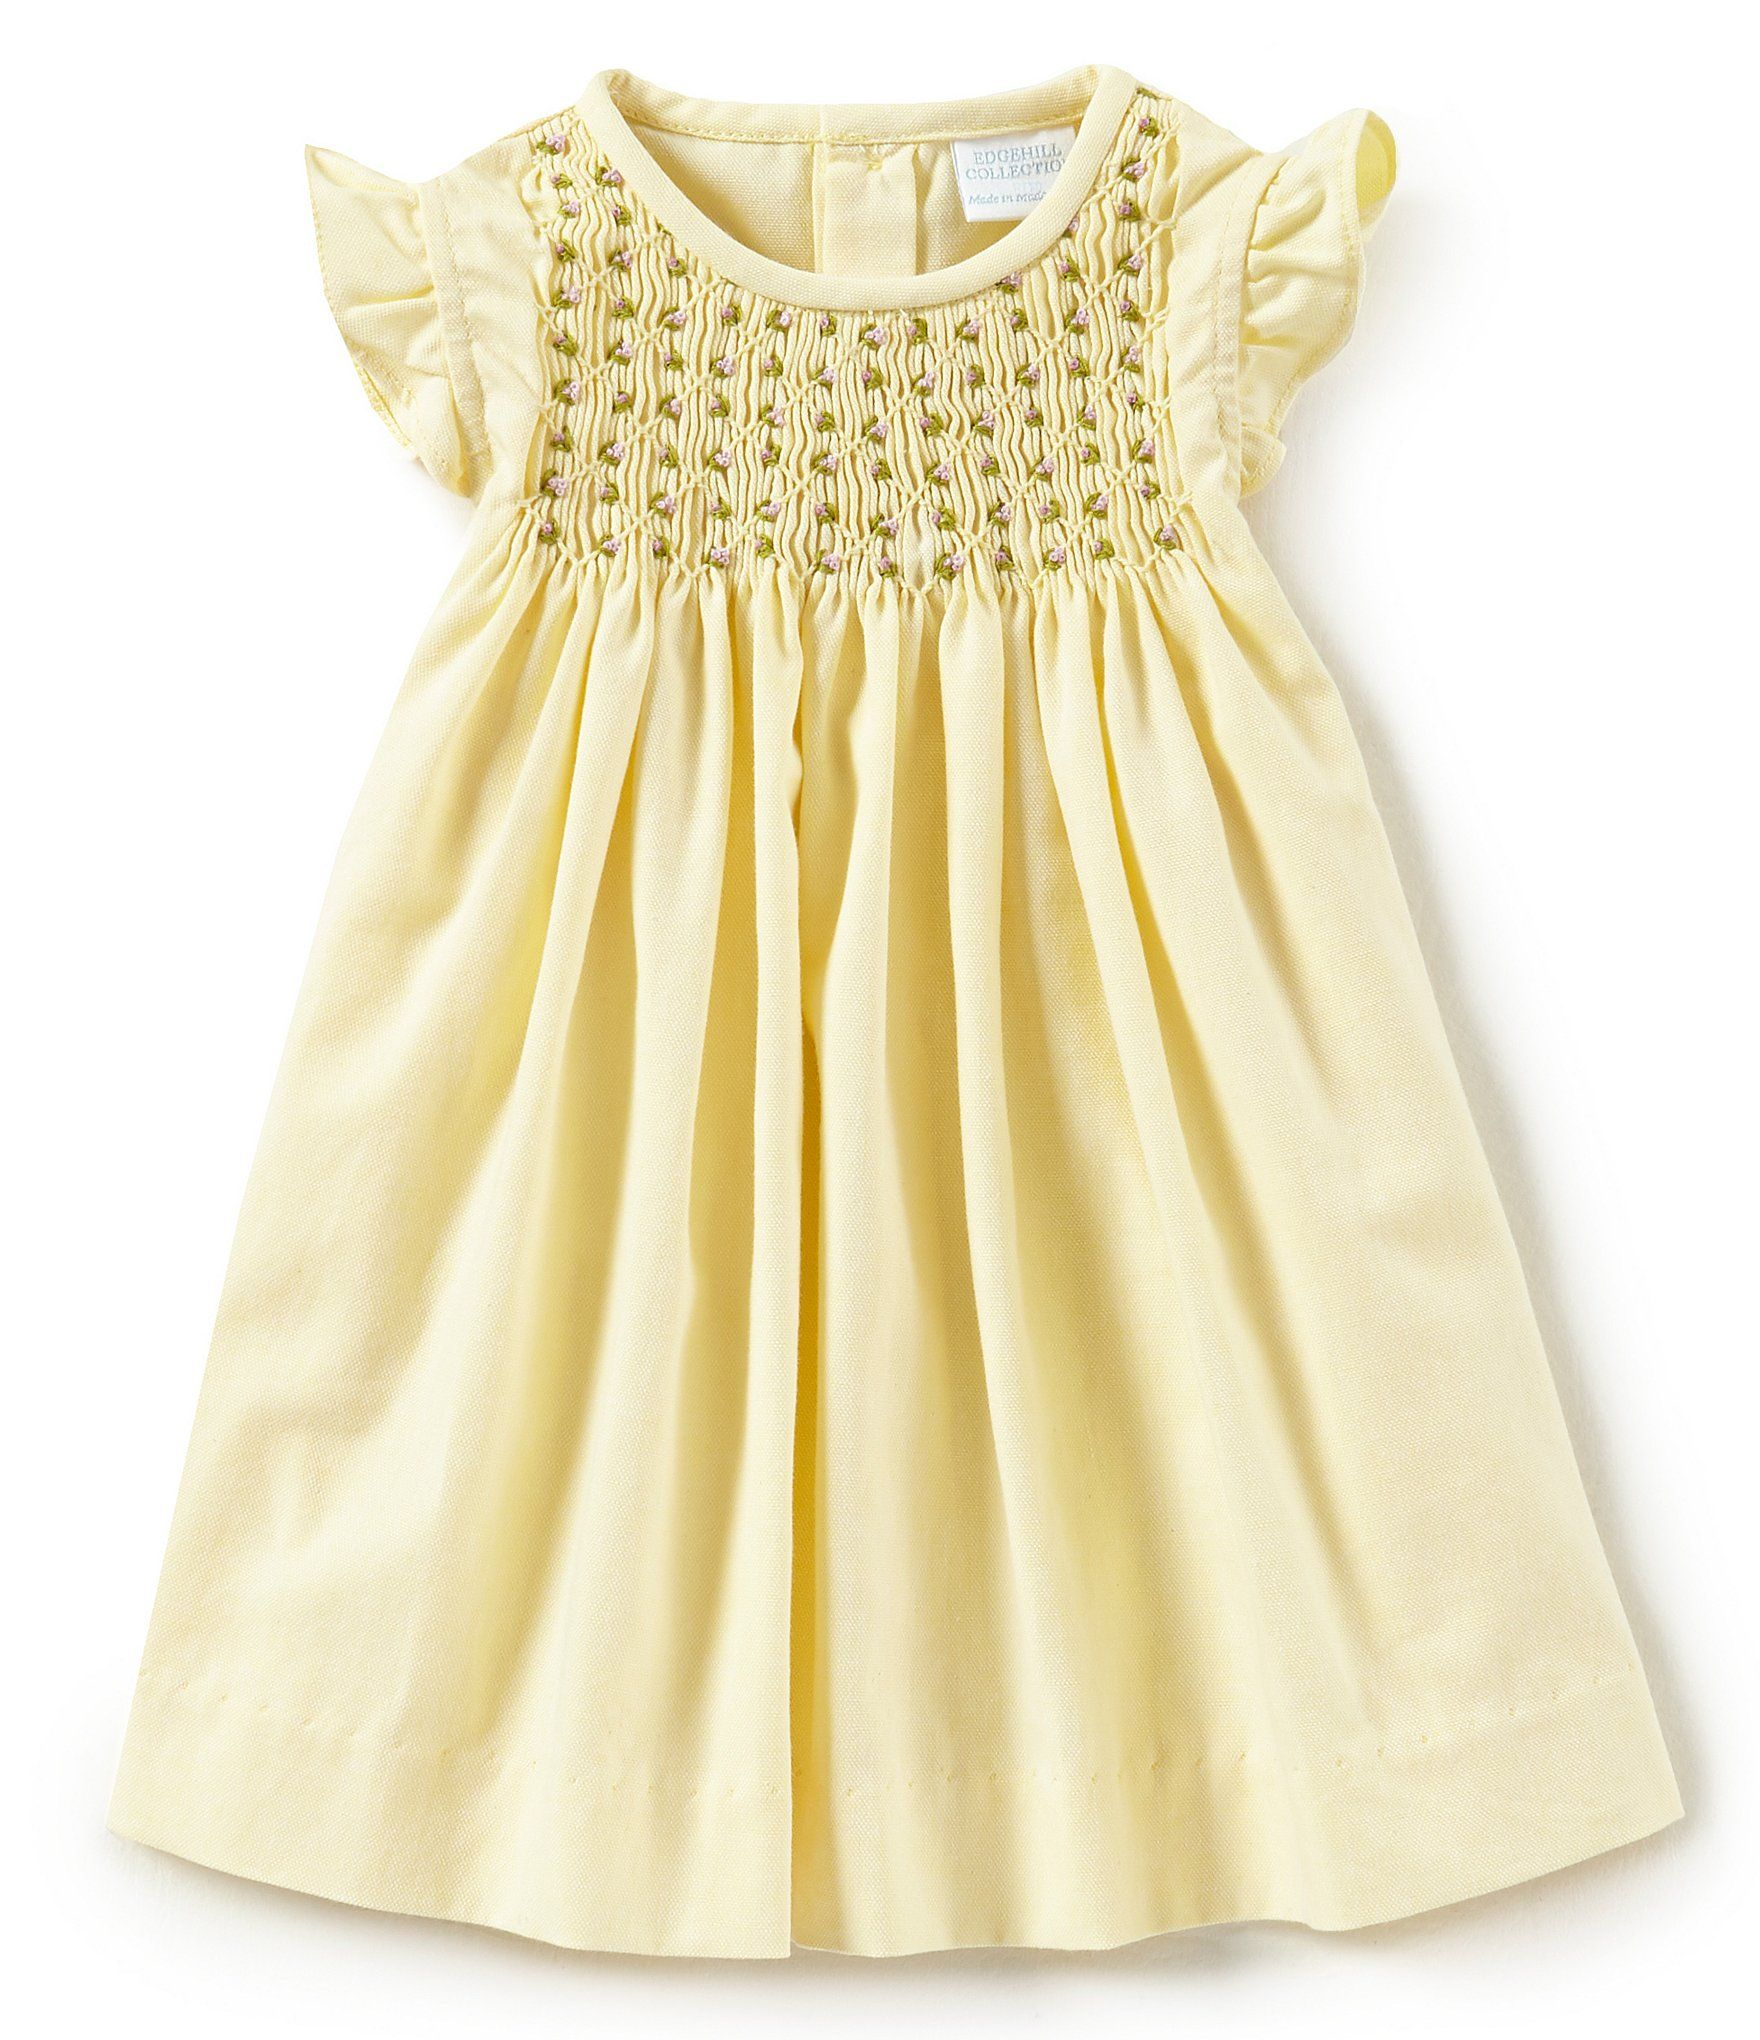 ac264275f3 Shop for Edgehill Collection Baby Girls 3-24 Months Solid Smocked Dress at  Dillards.com. Visit Dillards.com to find clothing